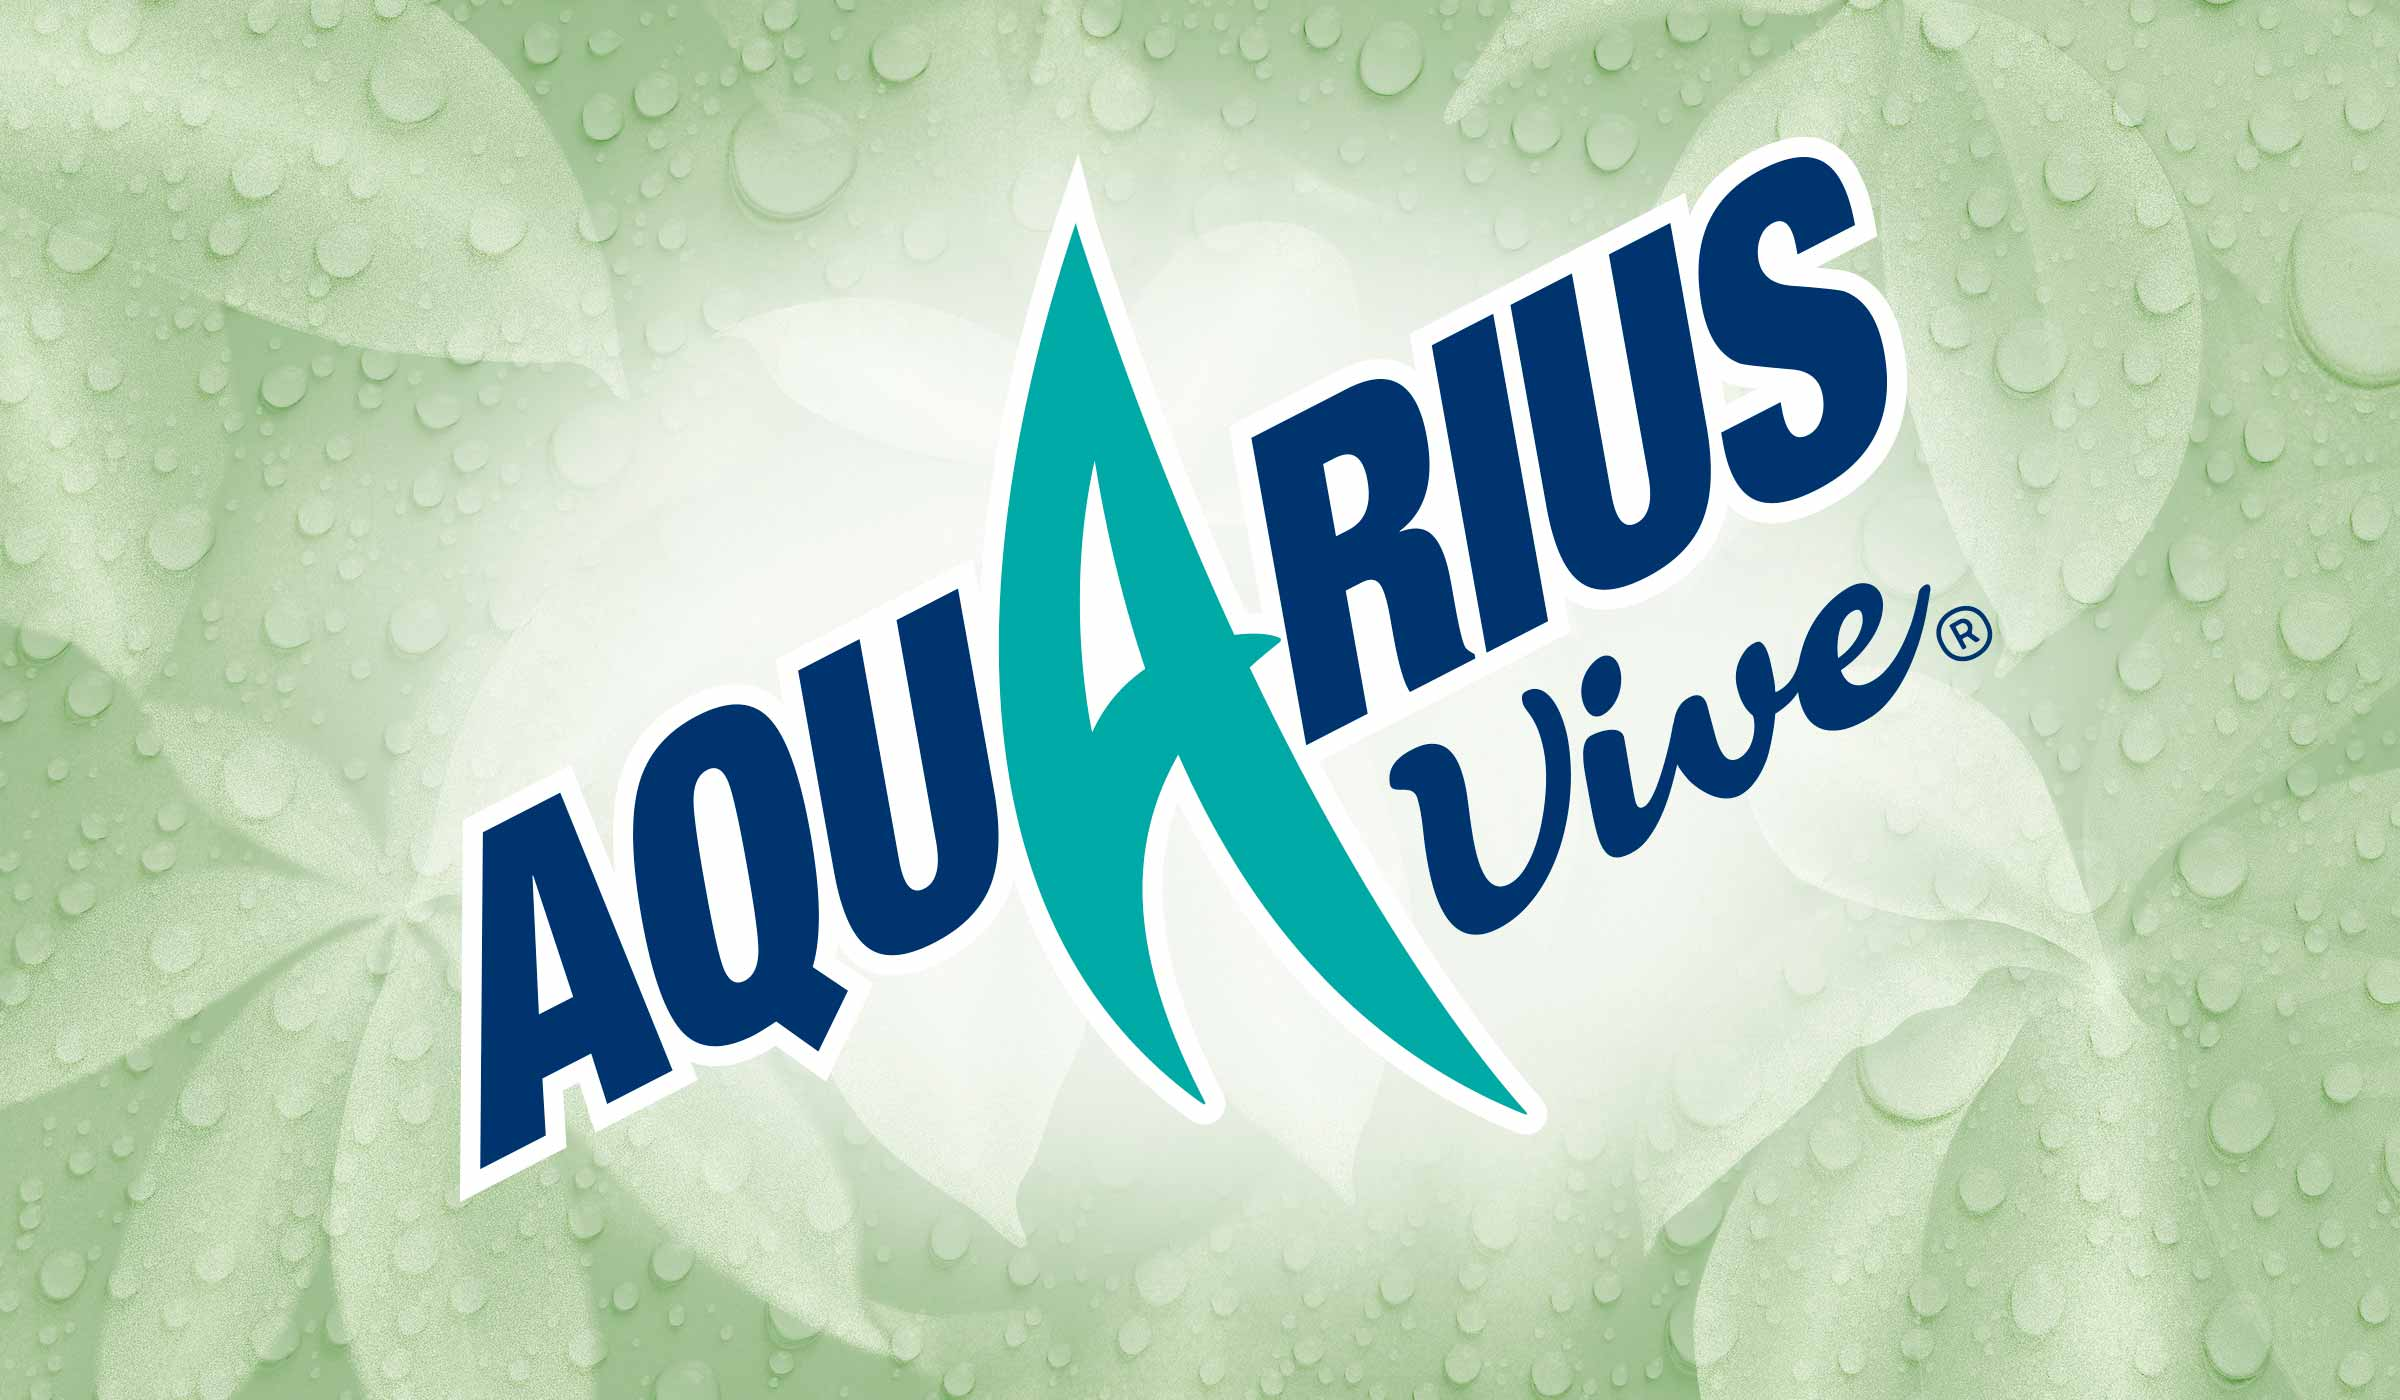 The Aquarius Vive logo that P&W designed for The Coca-Cola Company. The image includes a green Baobab leaf background that P&W illustrated, including mouth-watering water droplets.